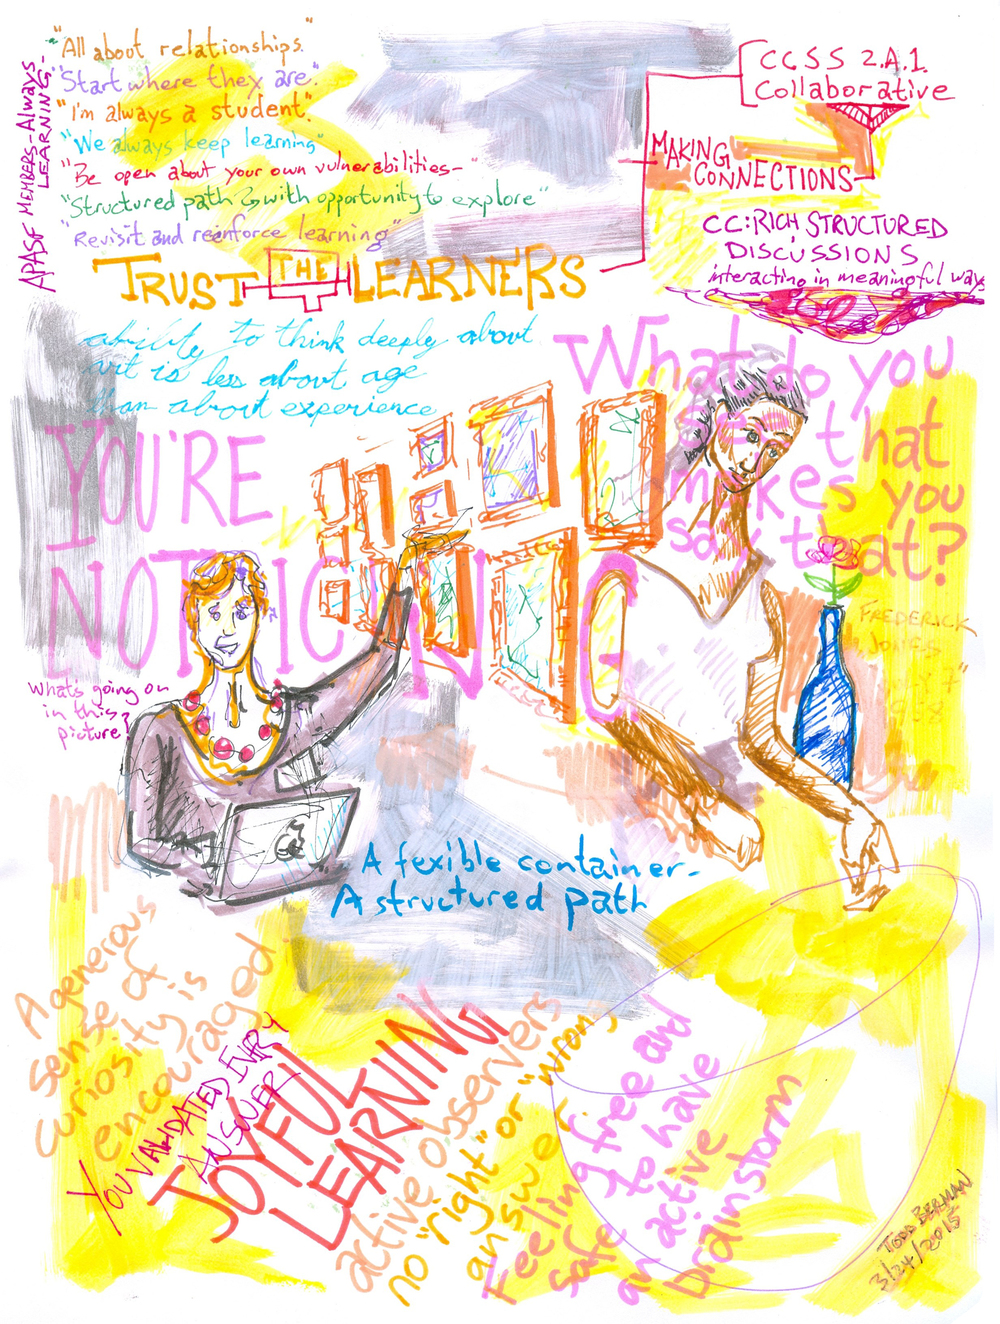 """You're Noticing"" 8"" x 5"", marker on paper illustration of a Visual Thinking Strategies workshop, 2015"